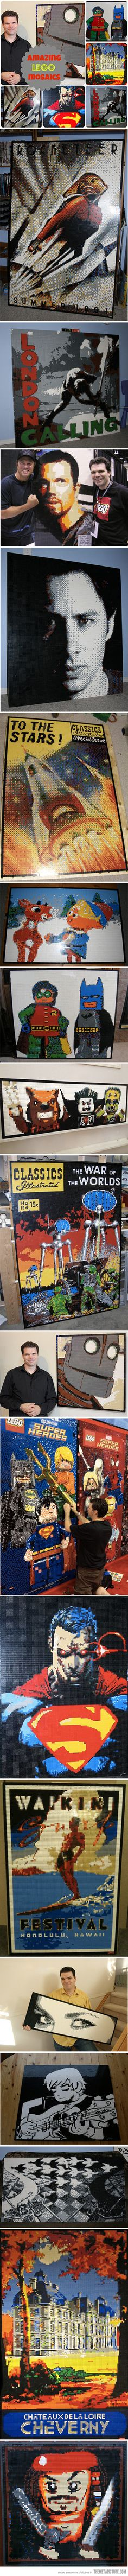 Amazing Lego Mosaics…  Would love to frame one of these.   We frame lots of jigsaw puzzles at Fix-a-Frame in Brisbane but I'm yet to frame a LEGO Artwork